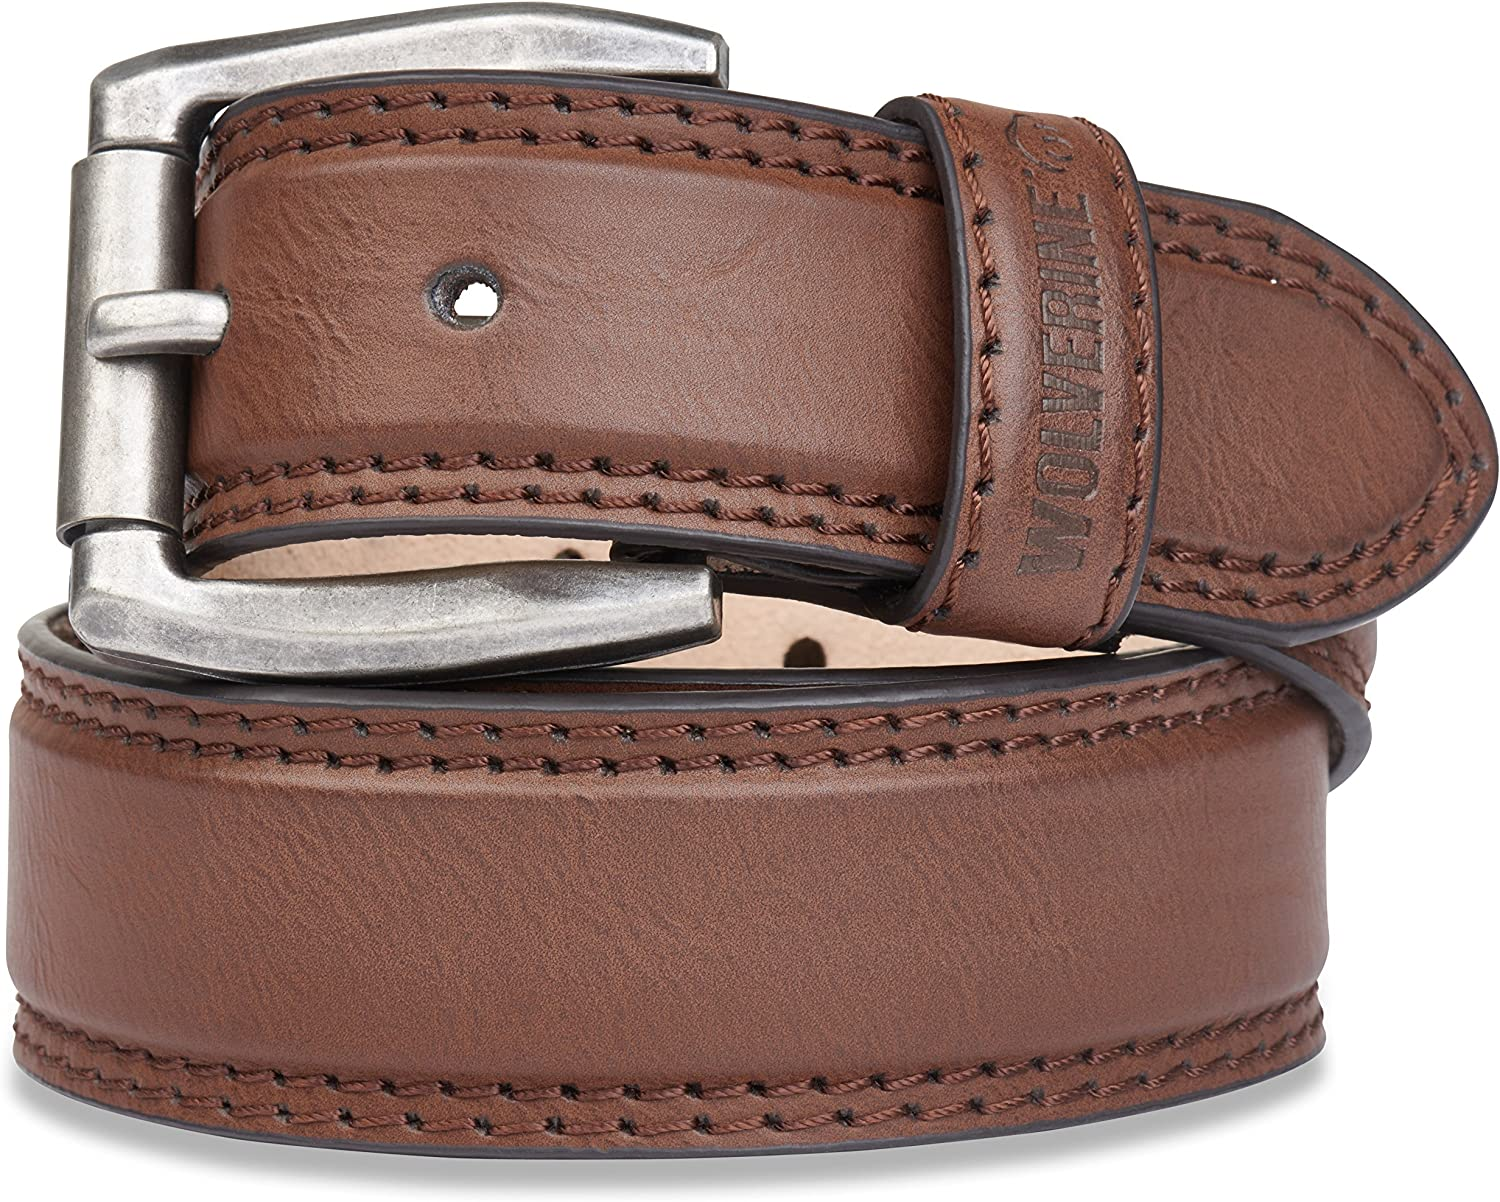 Top 10 Best Belts for Men (2020 Reviews & Buying Guide) 5